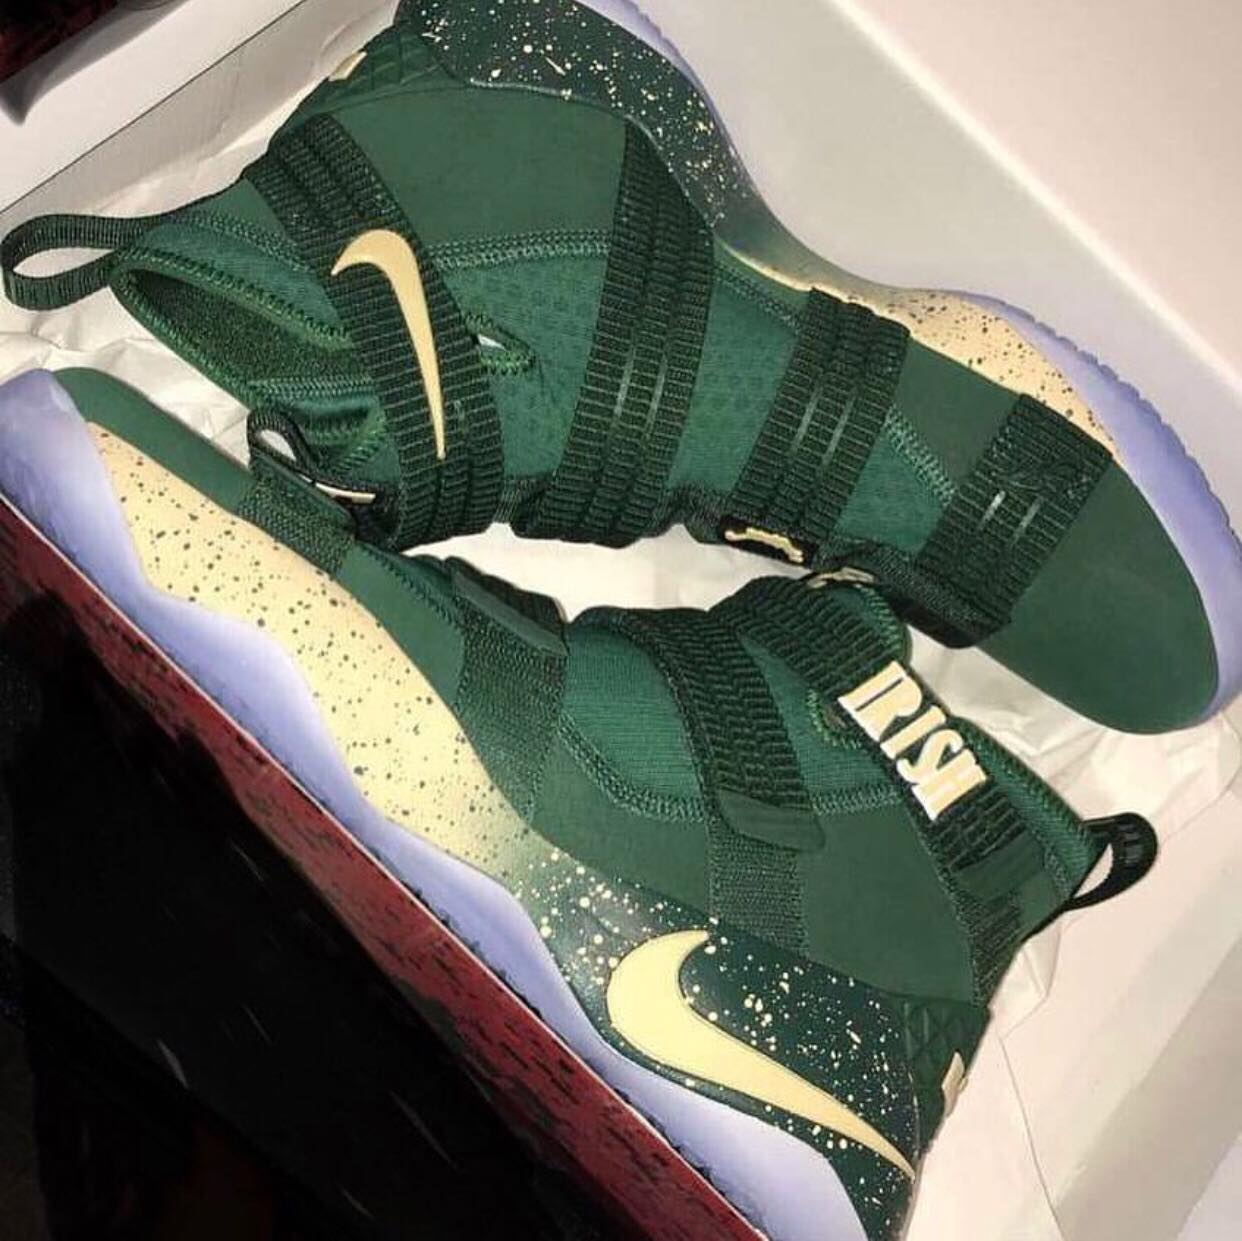 Nike LeBron Soldier 11 SVSM Pays Homage To LeBron's High School1